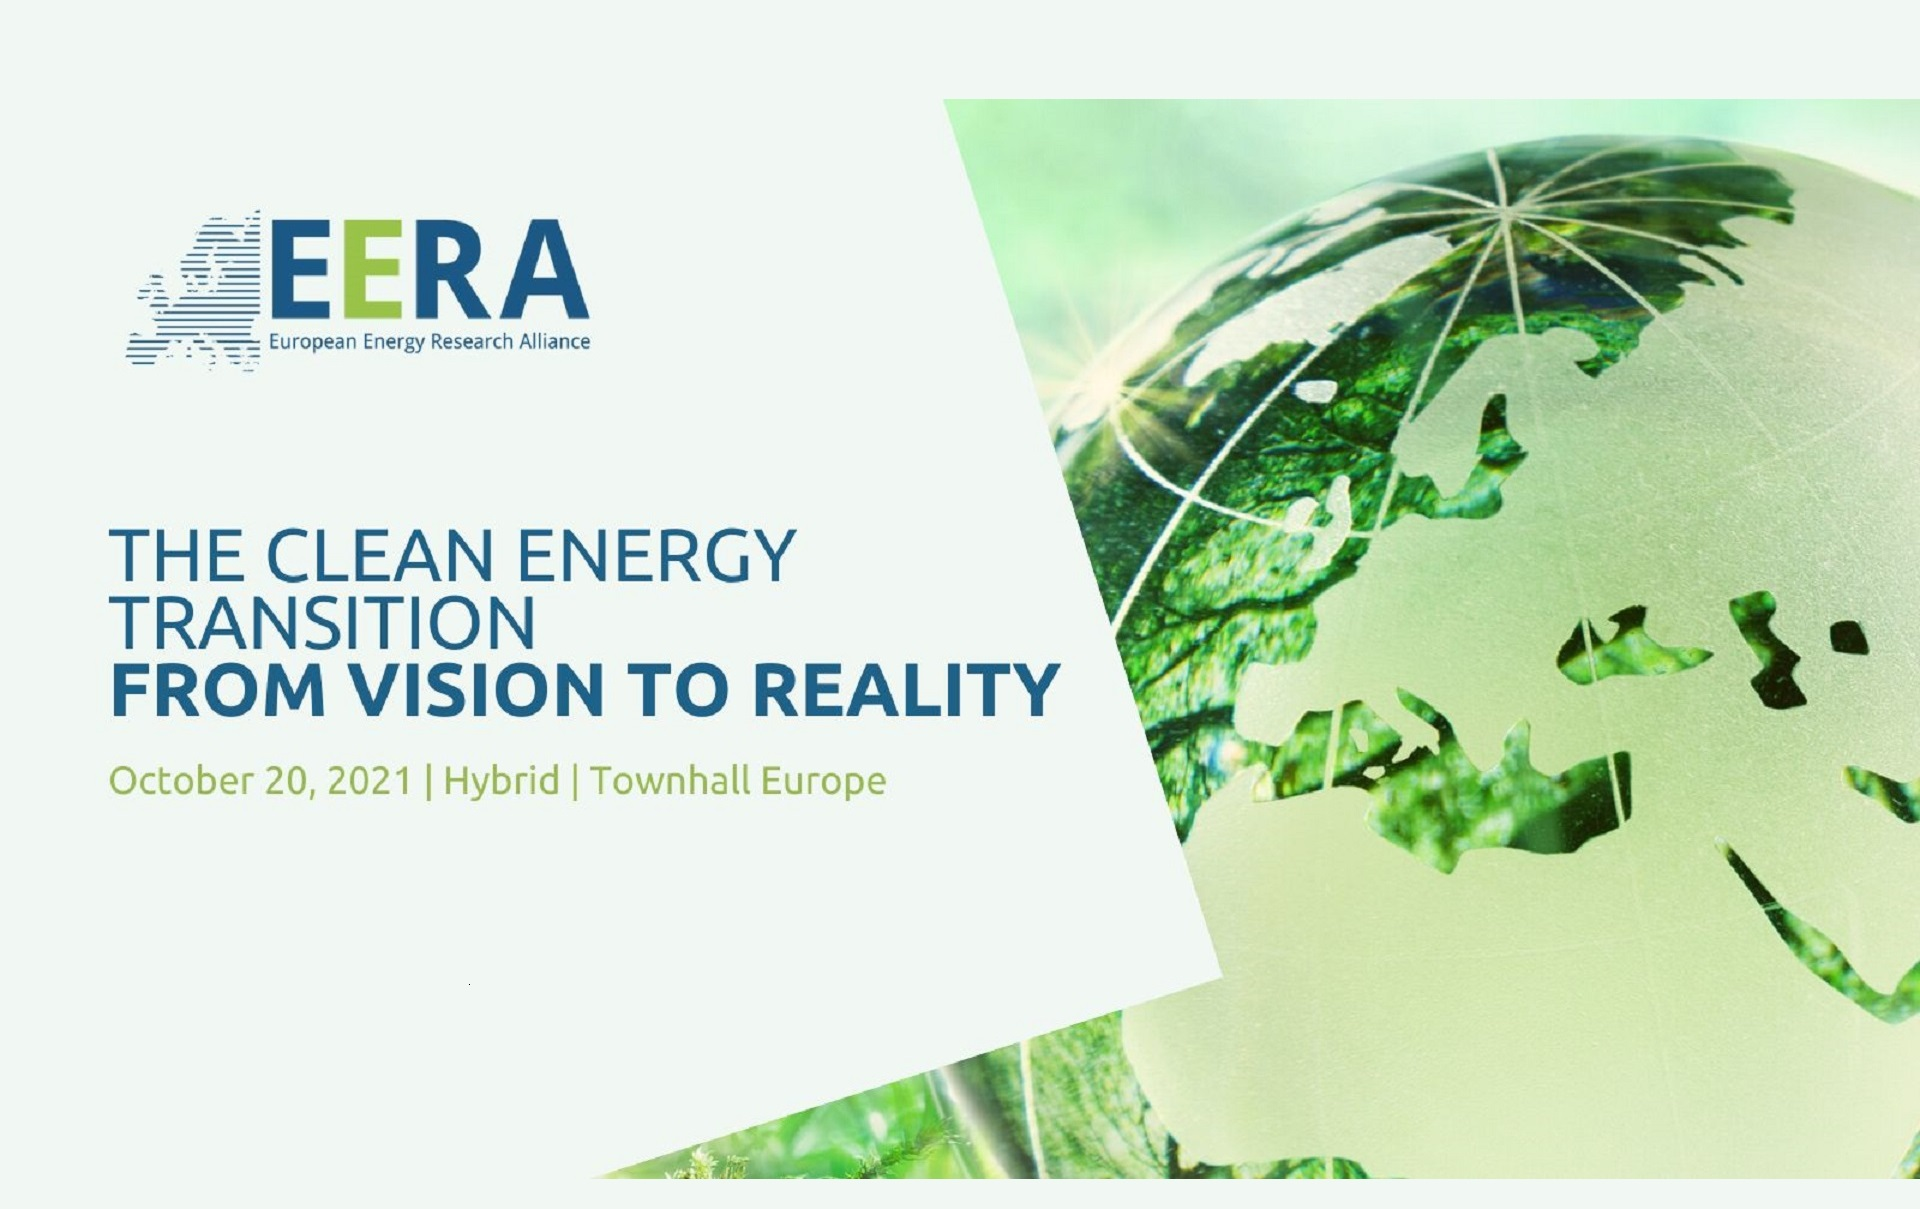 The Clean Energy Transition: From Vision to Reality